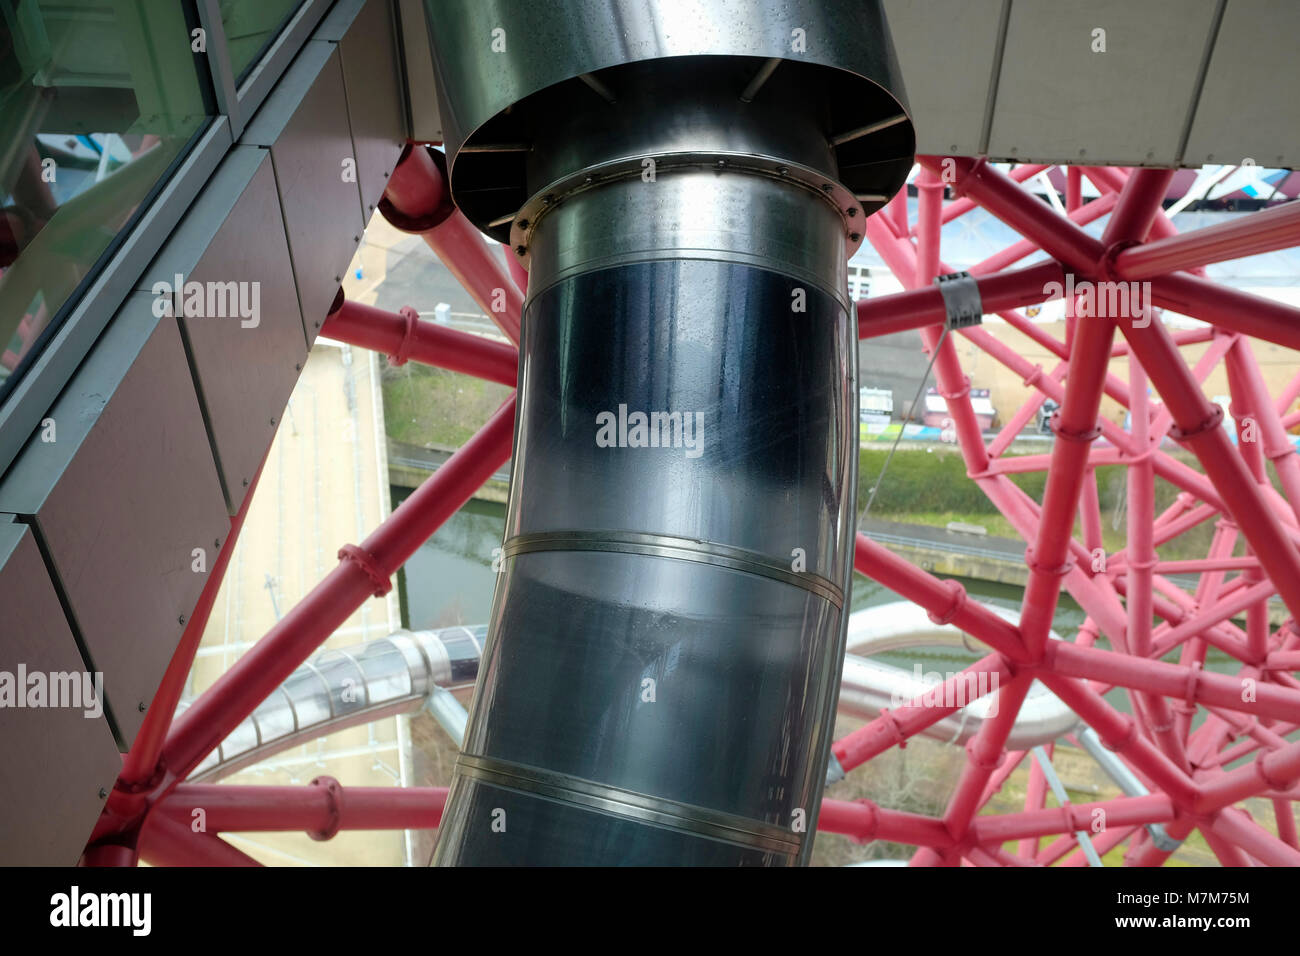 The world's longest tunnel slide at ArcelorMittal Orbit in Olympic Park, London, UK. - Stock Image